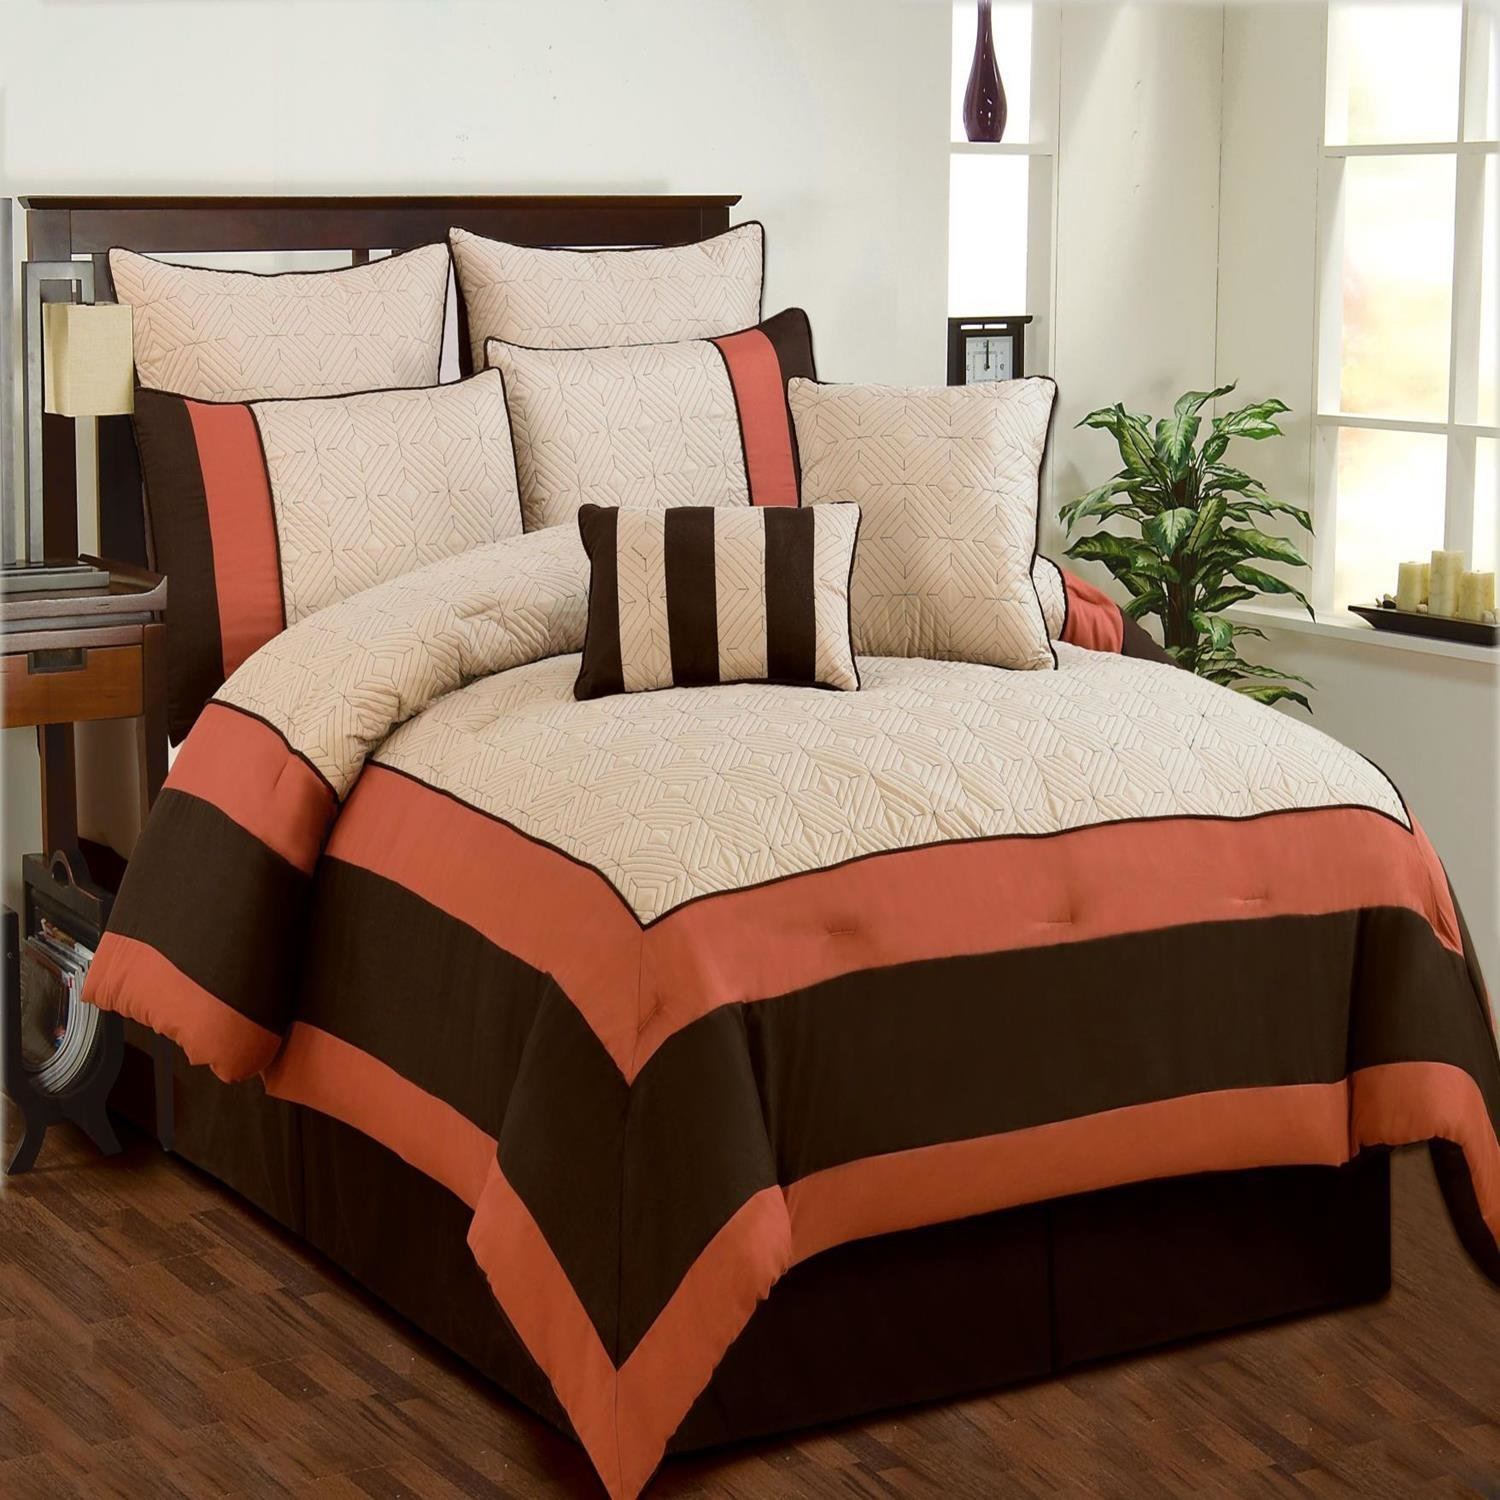 Best Aspen Beige Brown Coral Quilted Comforter Bed In A Bag With Pictures